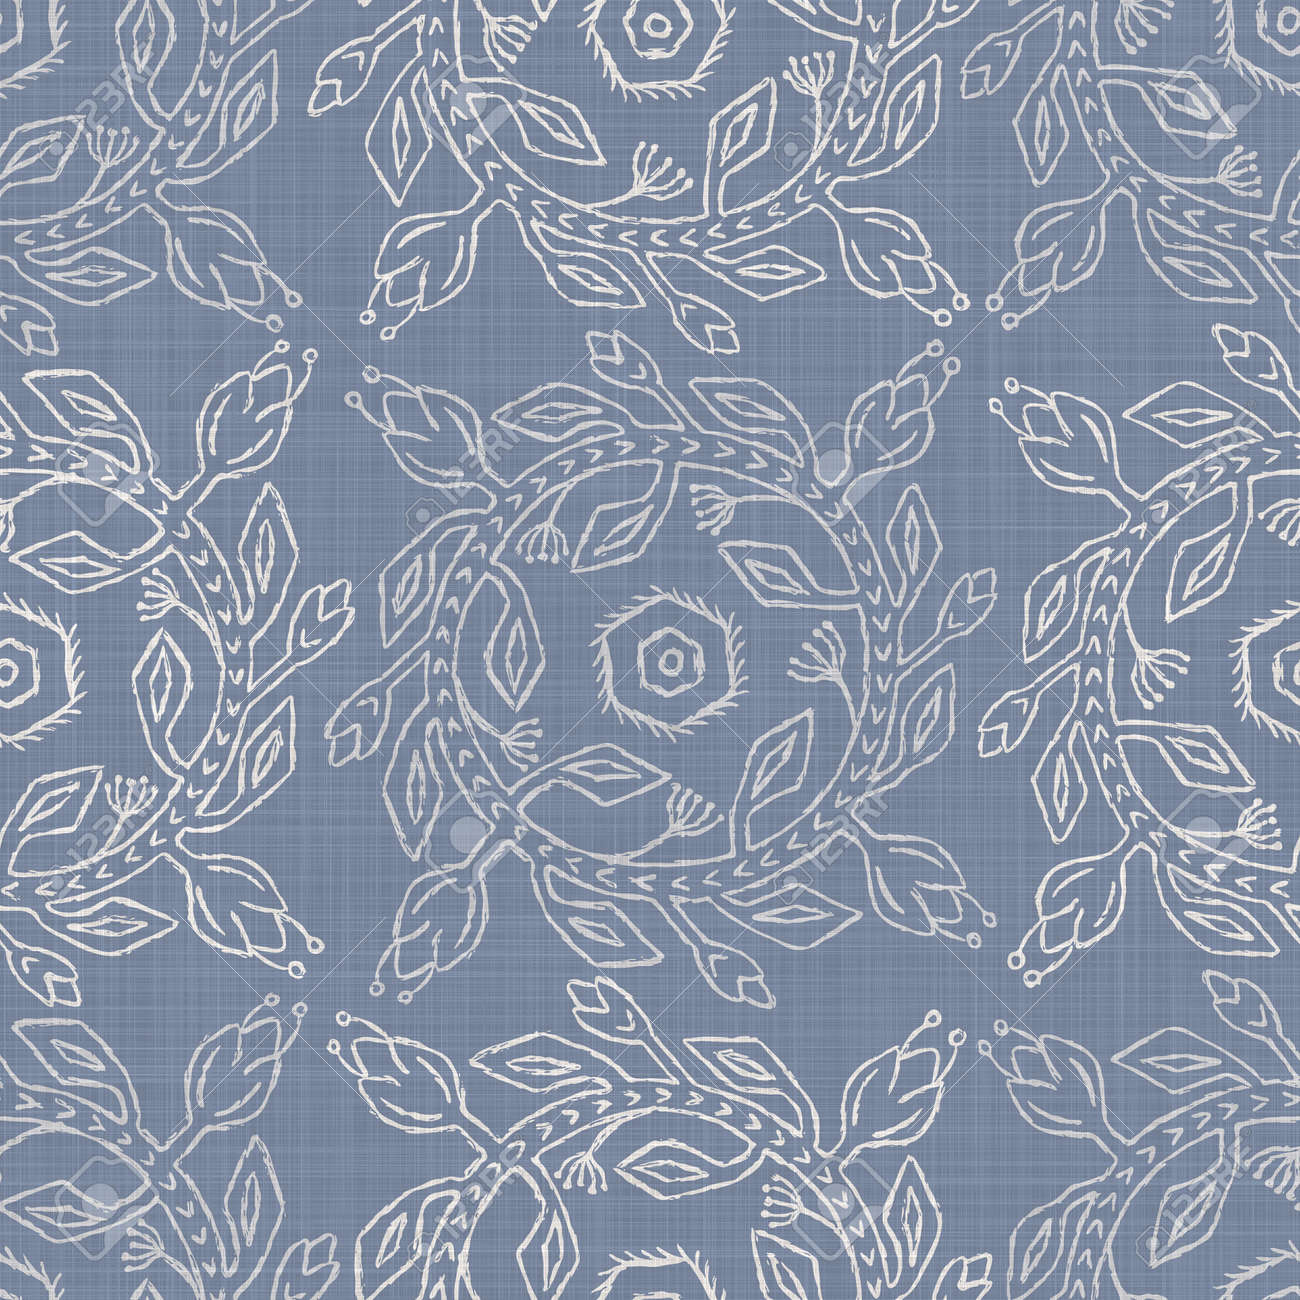 Seamless french farmhouse damask linen pattern. Provence blue white woven texture. Shabby chic style decorative fabric background. Textile rustic all over print - 159343944